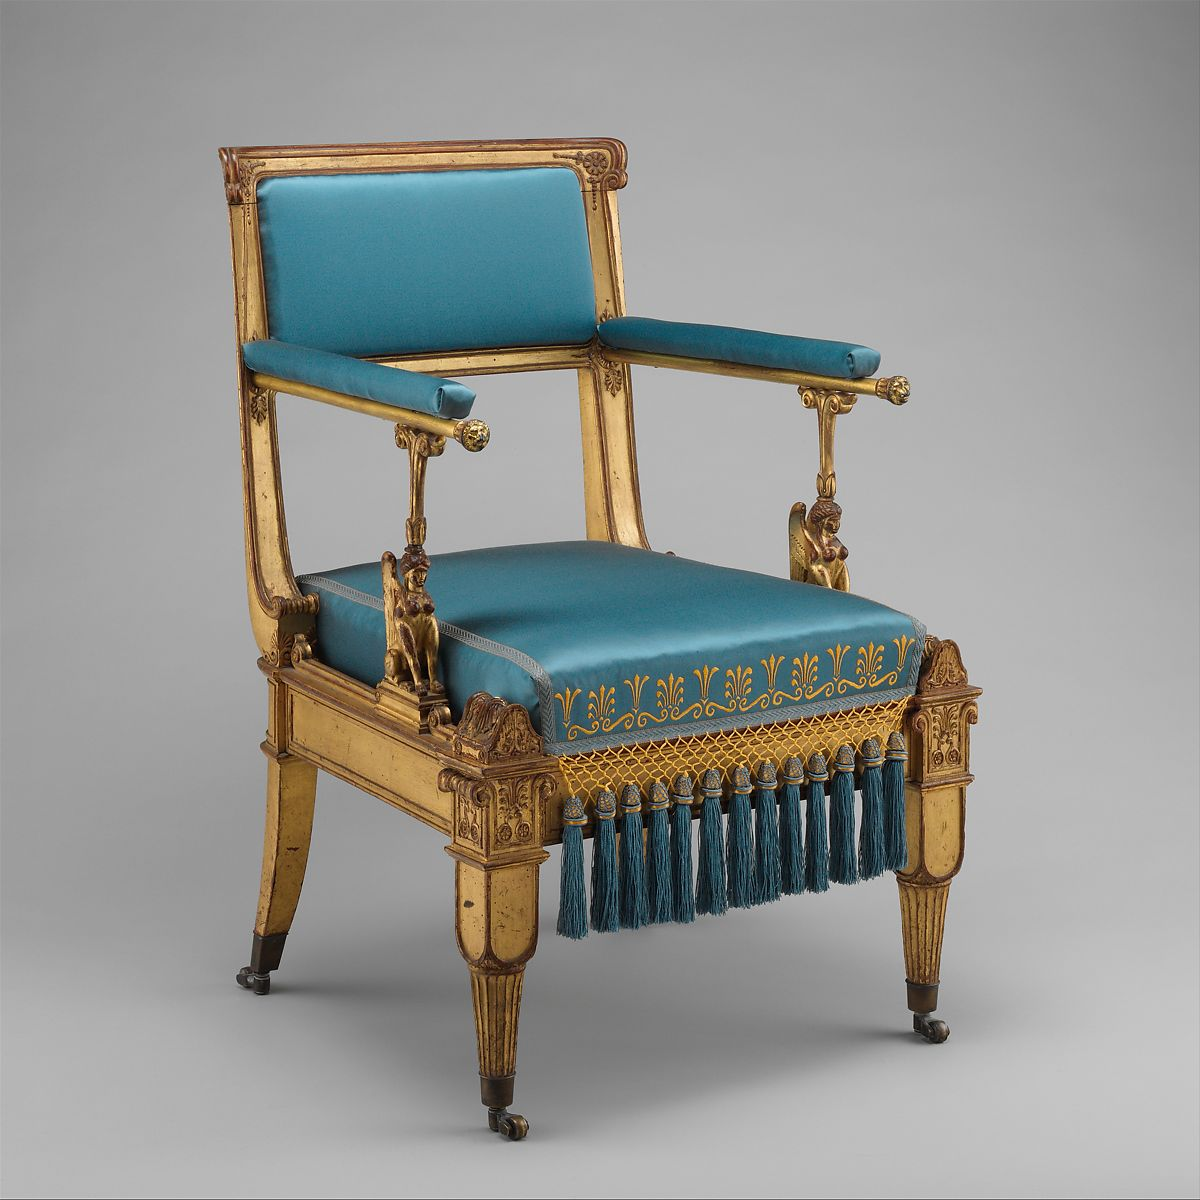 Antike Sofas For Kids Karl Friedrich Schinkel Armchair German Berlin The Met